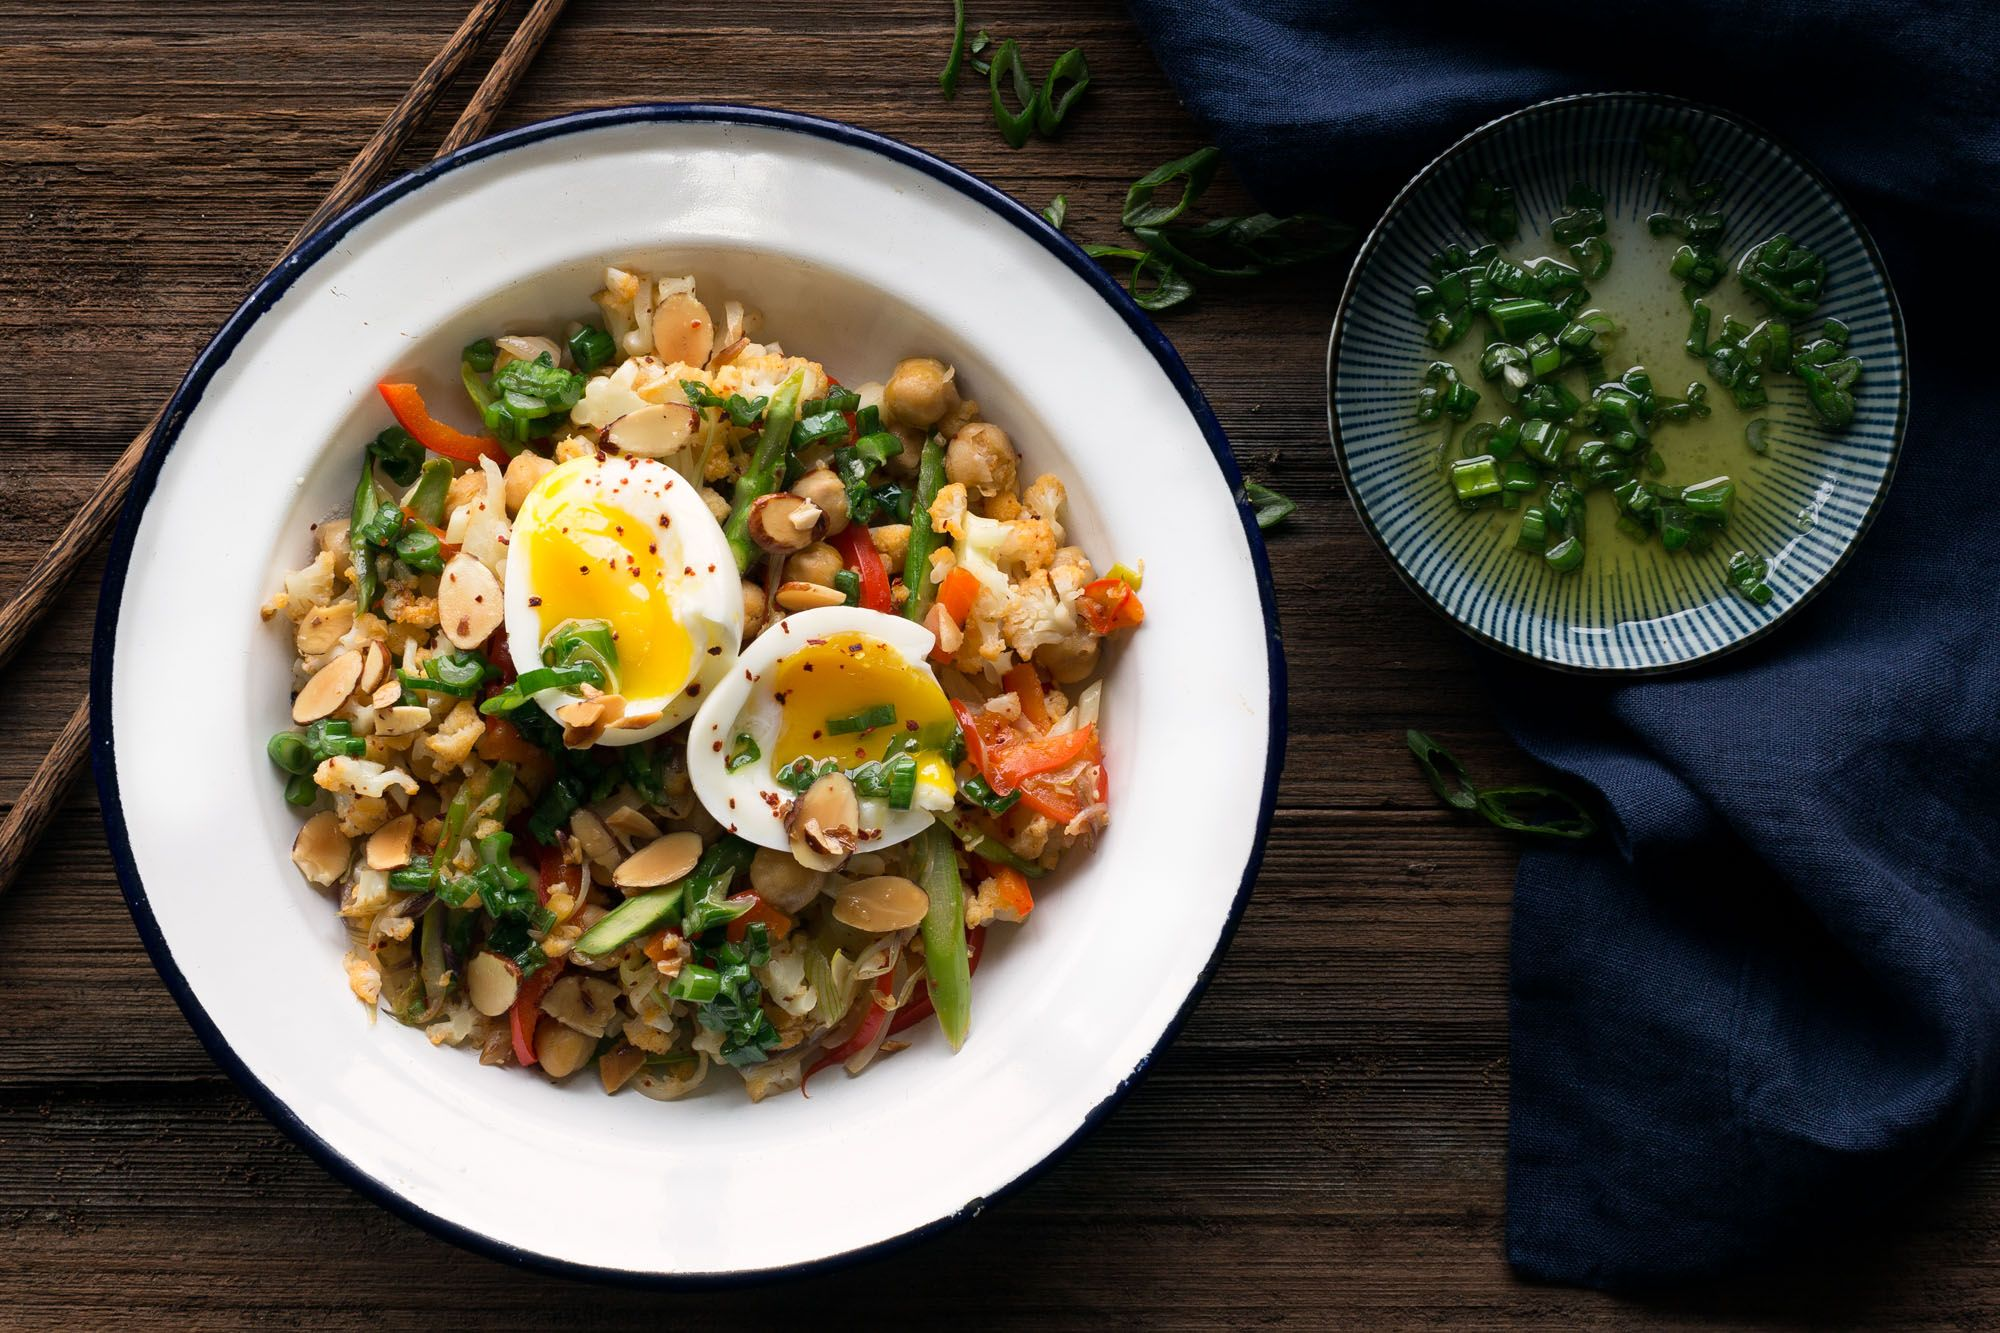 Chickpea and cauliflower fried rice with a soft cooked egg